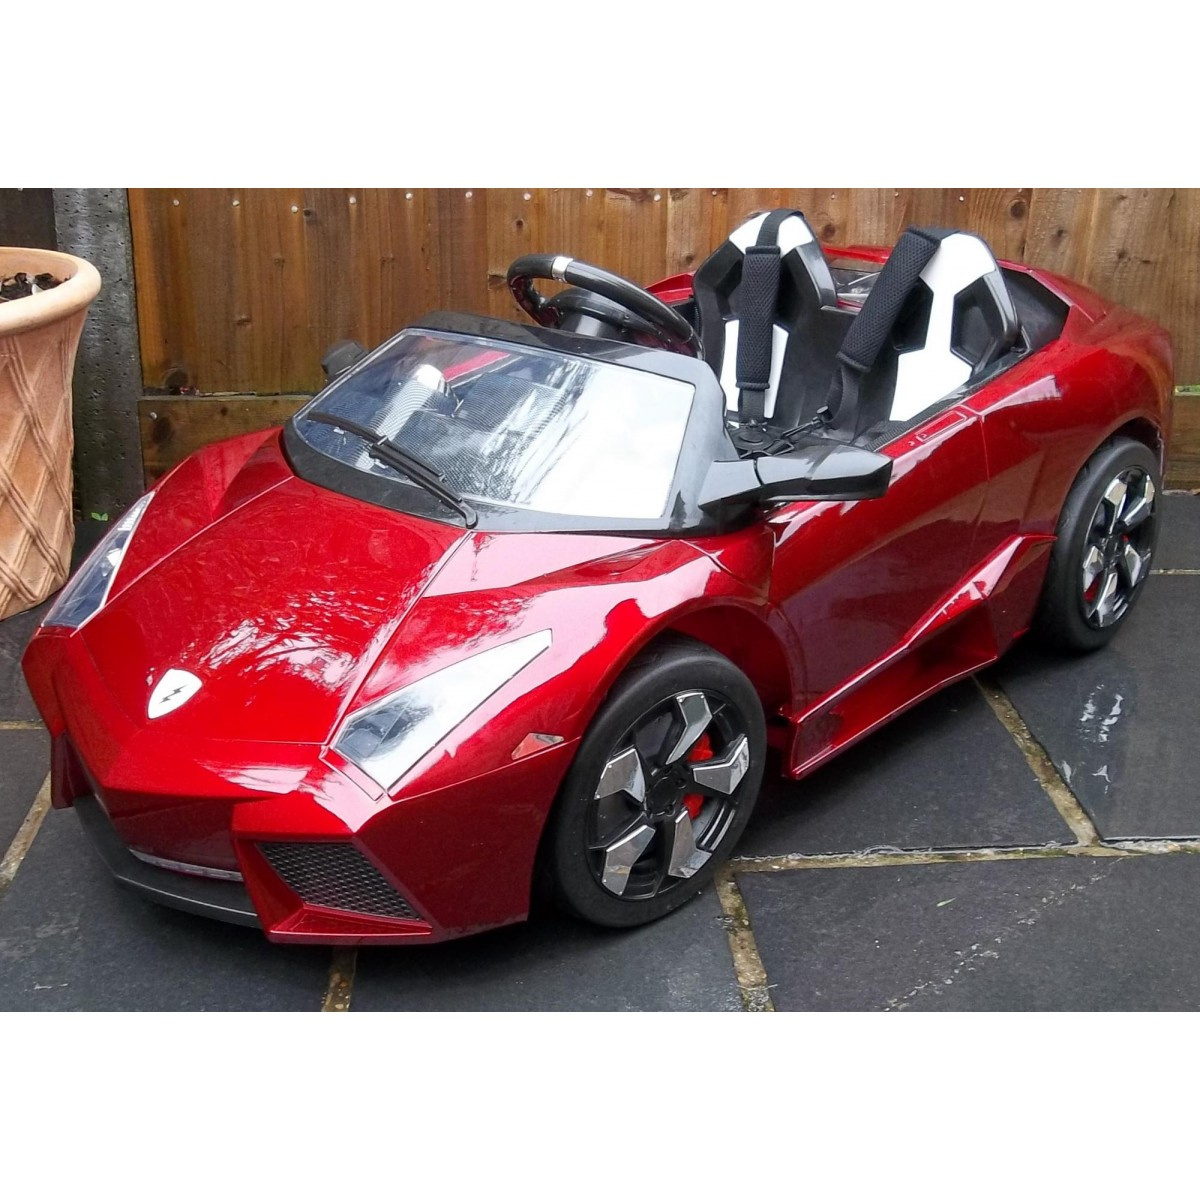 Lamborghini Electric Car For Kids >> Kids Lamborghini Ride On Car 12v Electric Red Kid Toy Online Shop